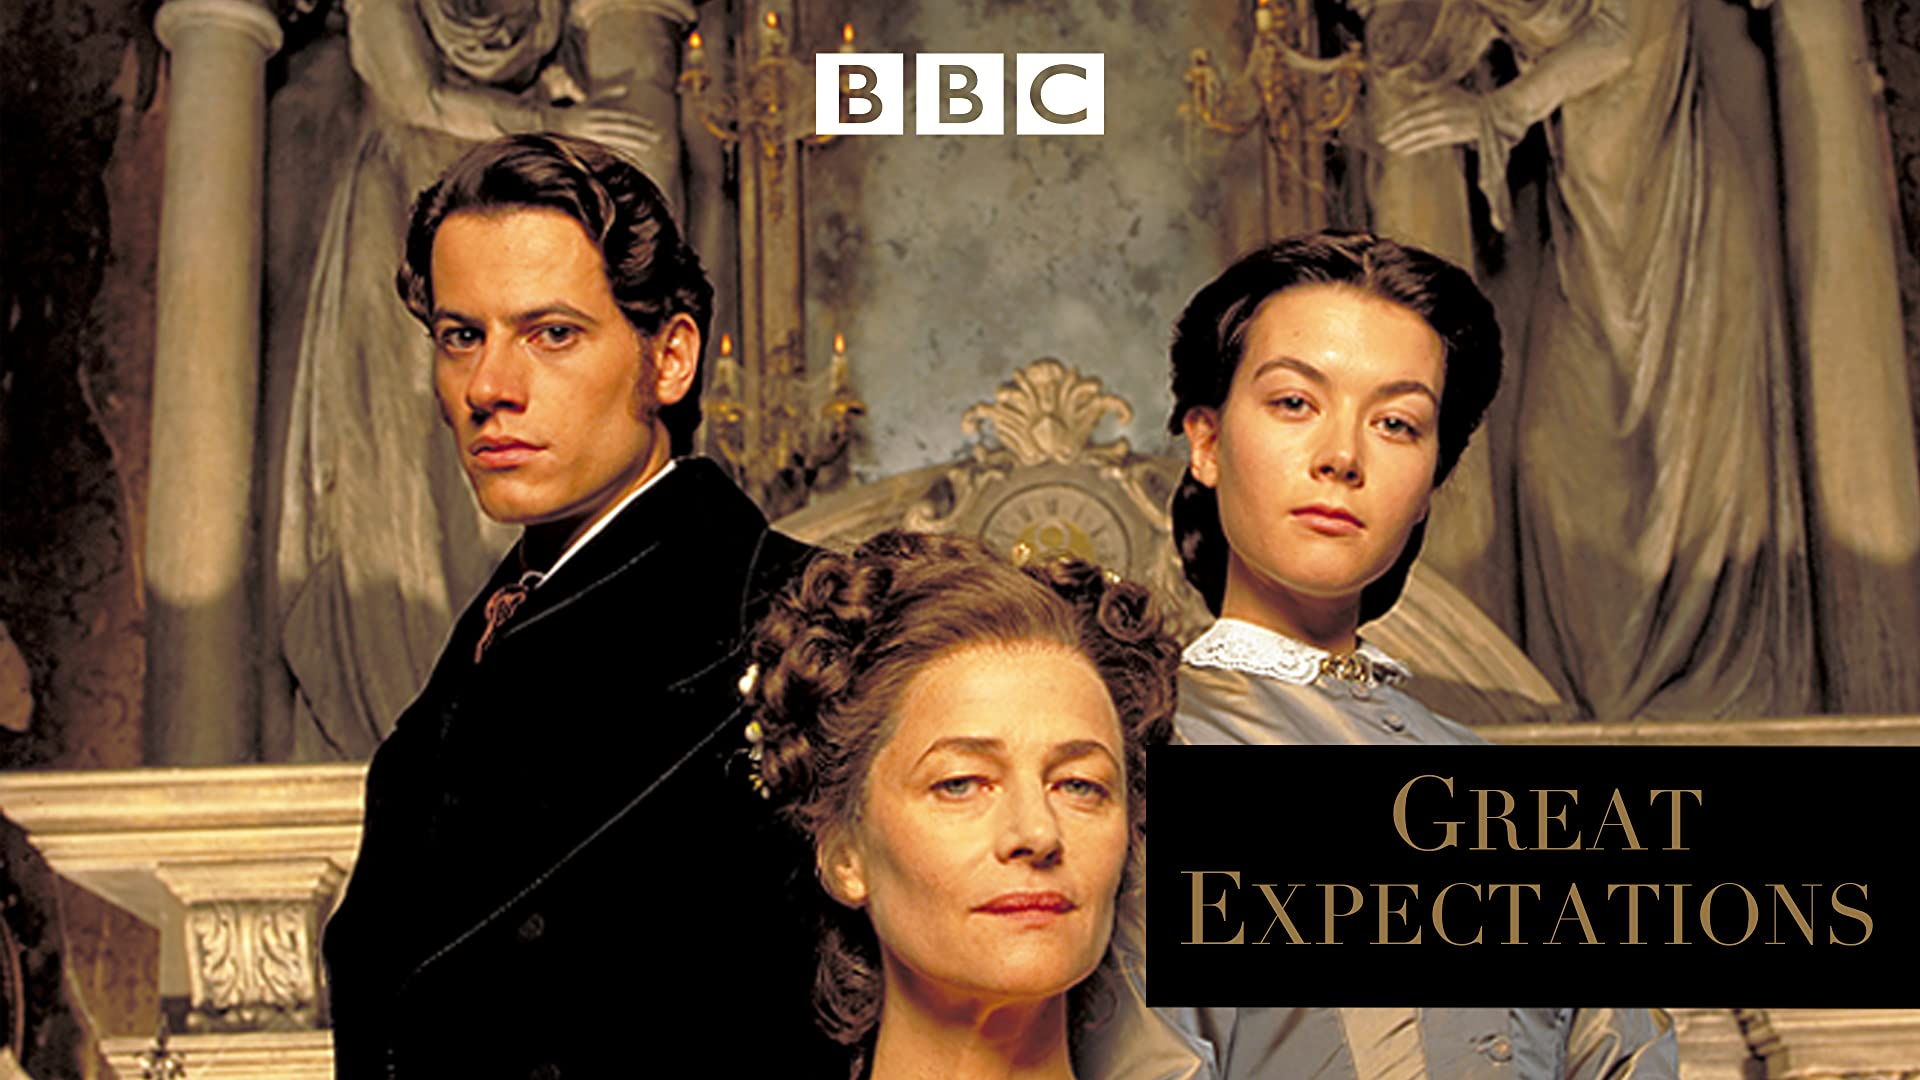 watch great expectations episode 1 online free